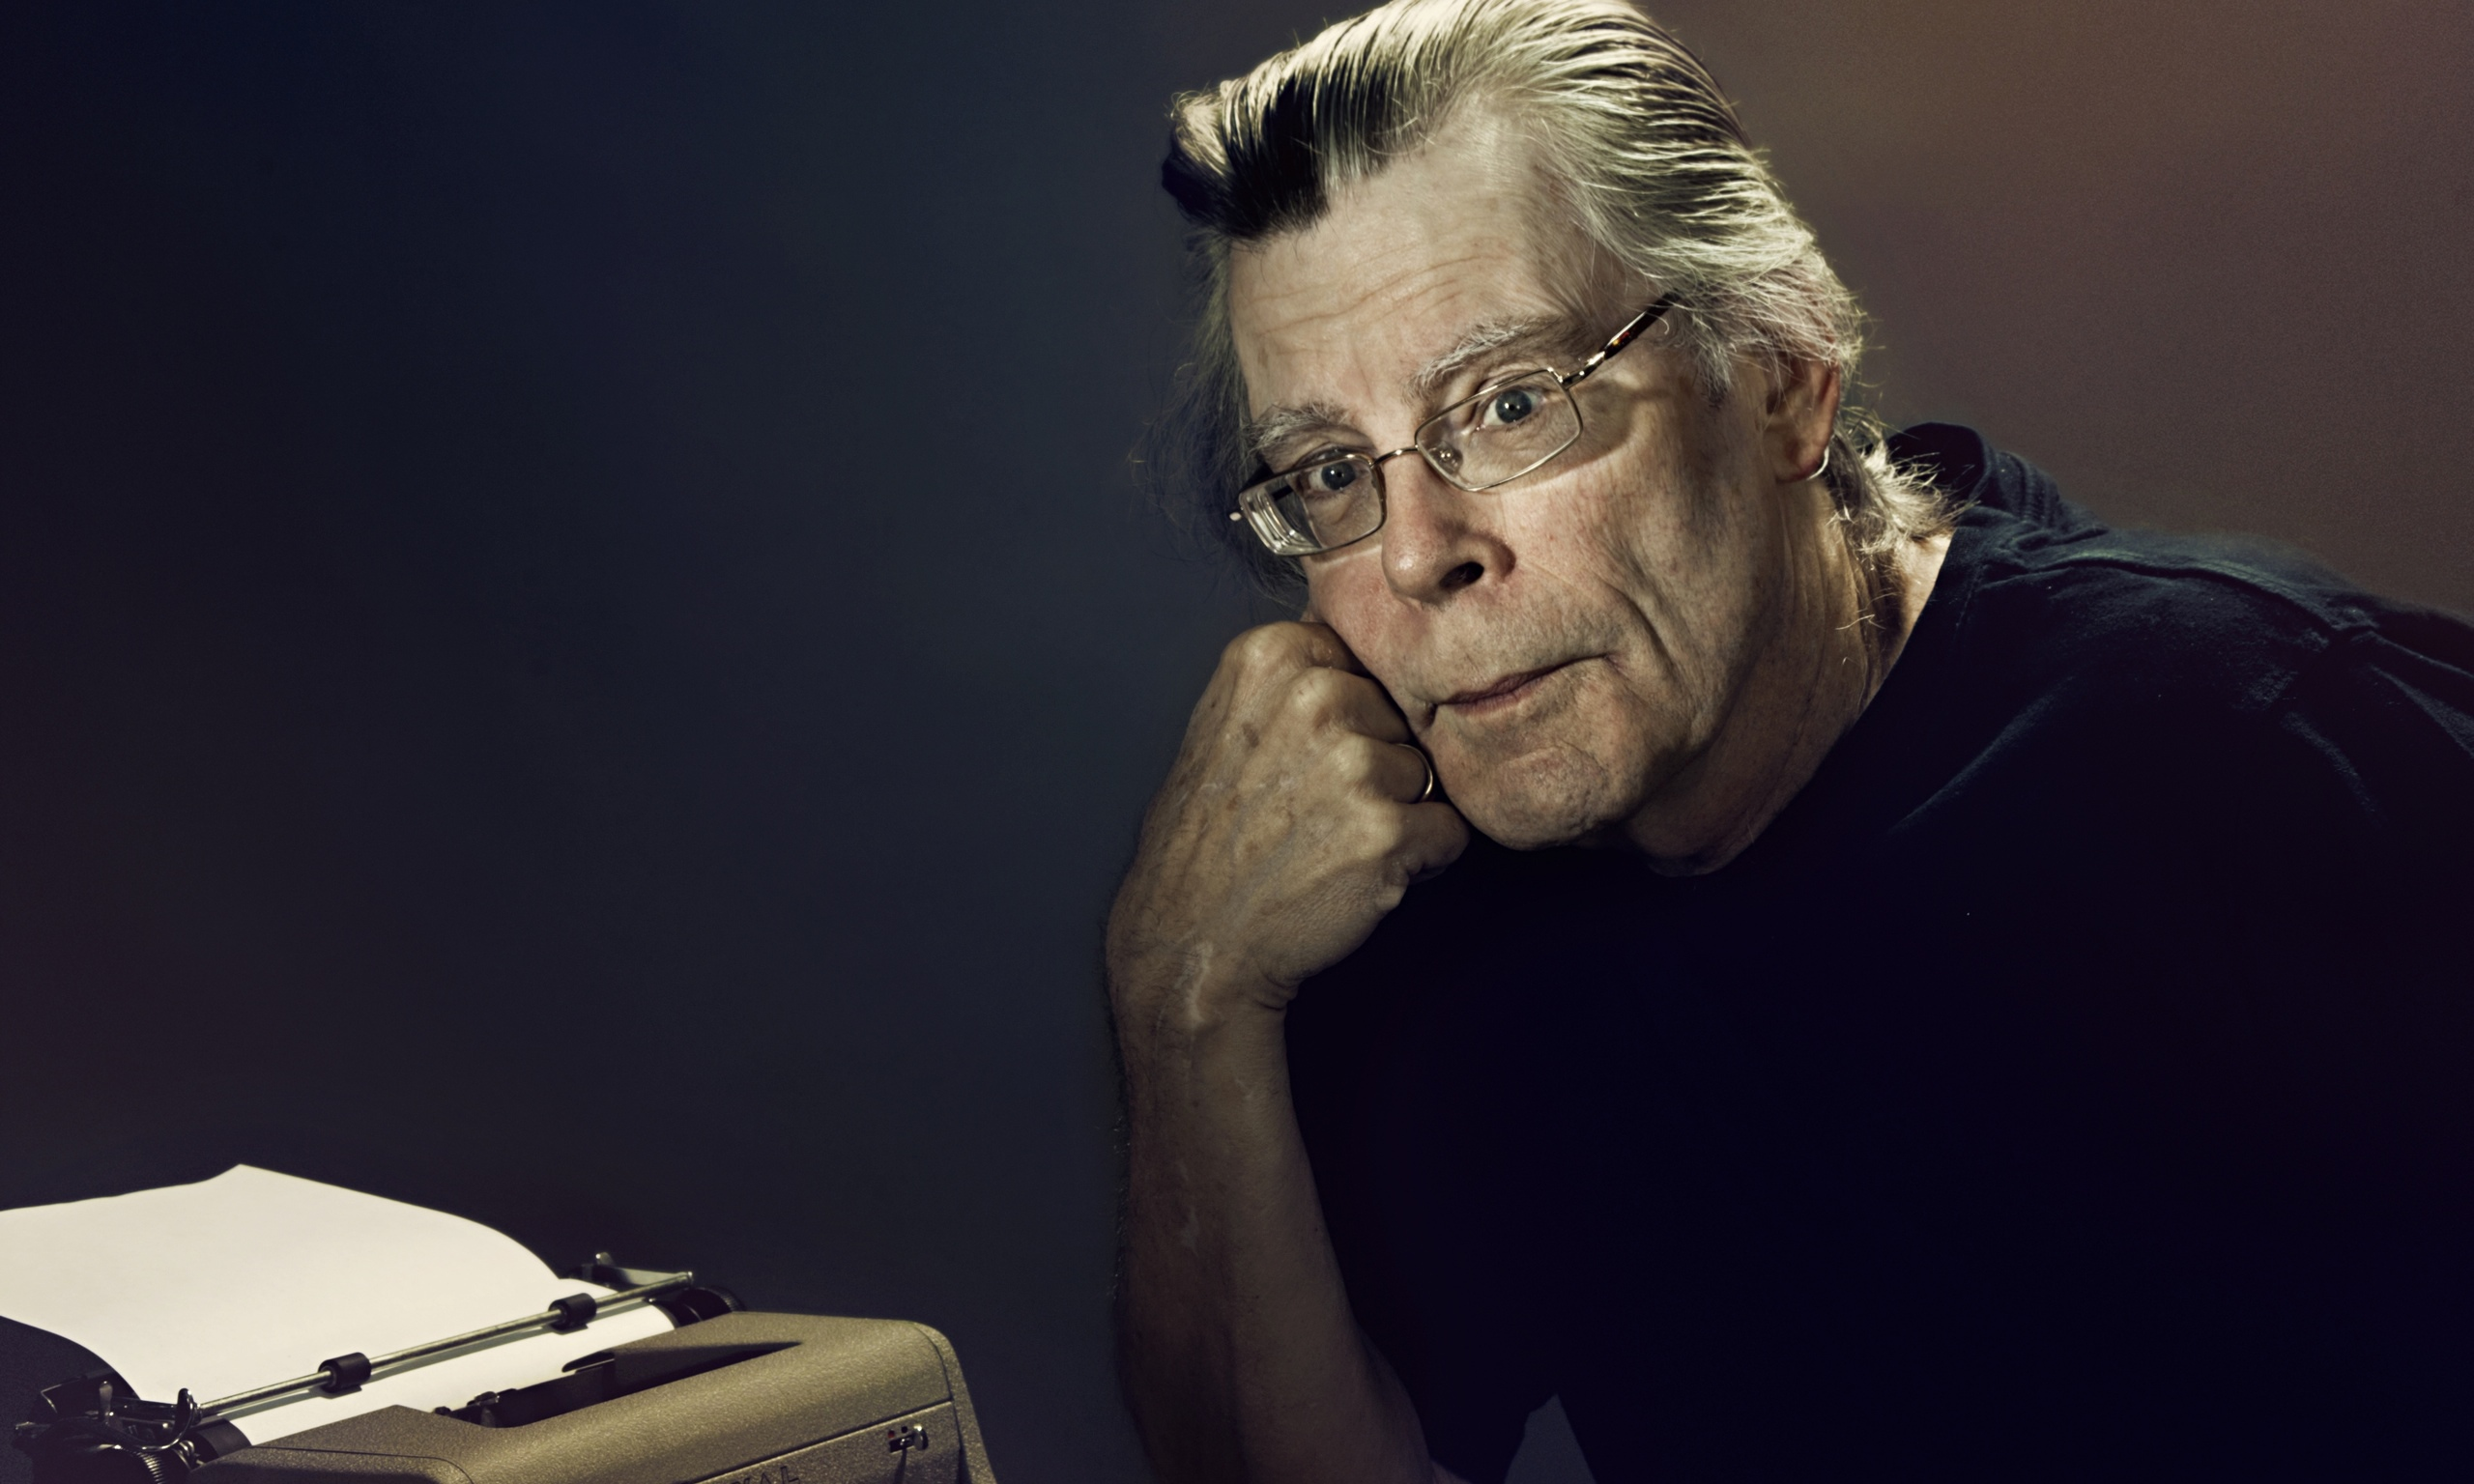 stephen king christinestephen king books, stephen king it, stephen king книги, stephen king twitter, stephen king movies, stephen king biography, stephen king carrie, stephen king dark tower, stephen king wiki, stephen king quotes, stephen king фильмы, stephen king on writing, stephen king the stand, stephen king christine, stephen king pet sematary, stephen king read online, stephen king revival, stephen king films, stephen king joyland, stephen king misery pdf